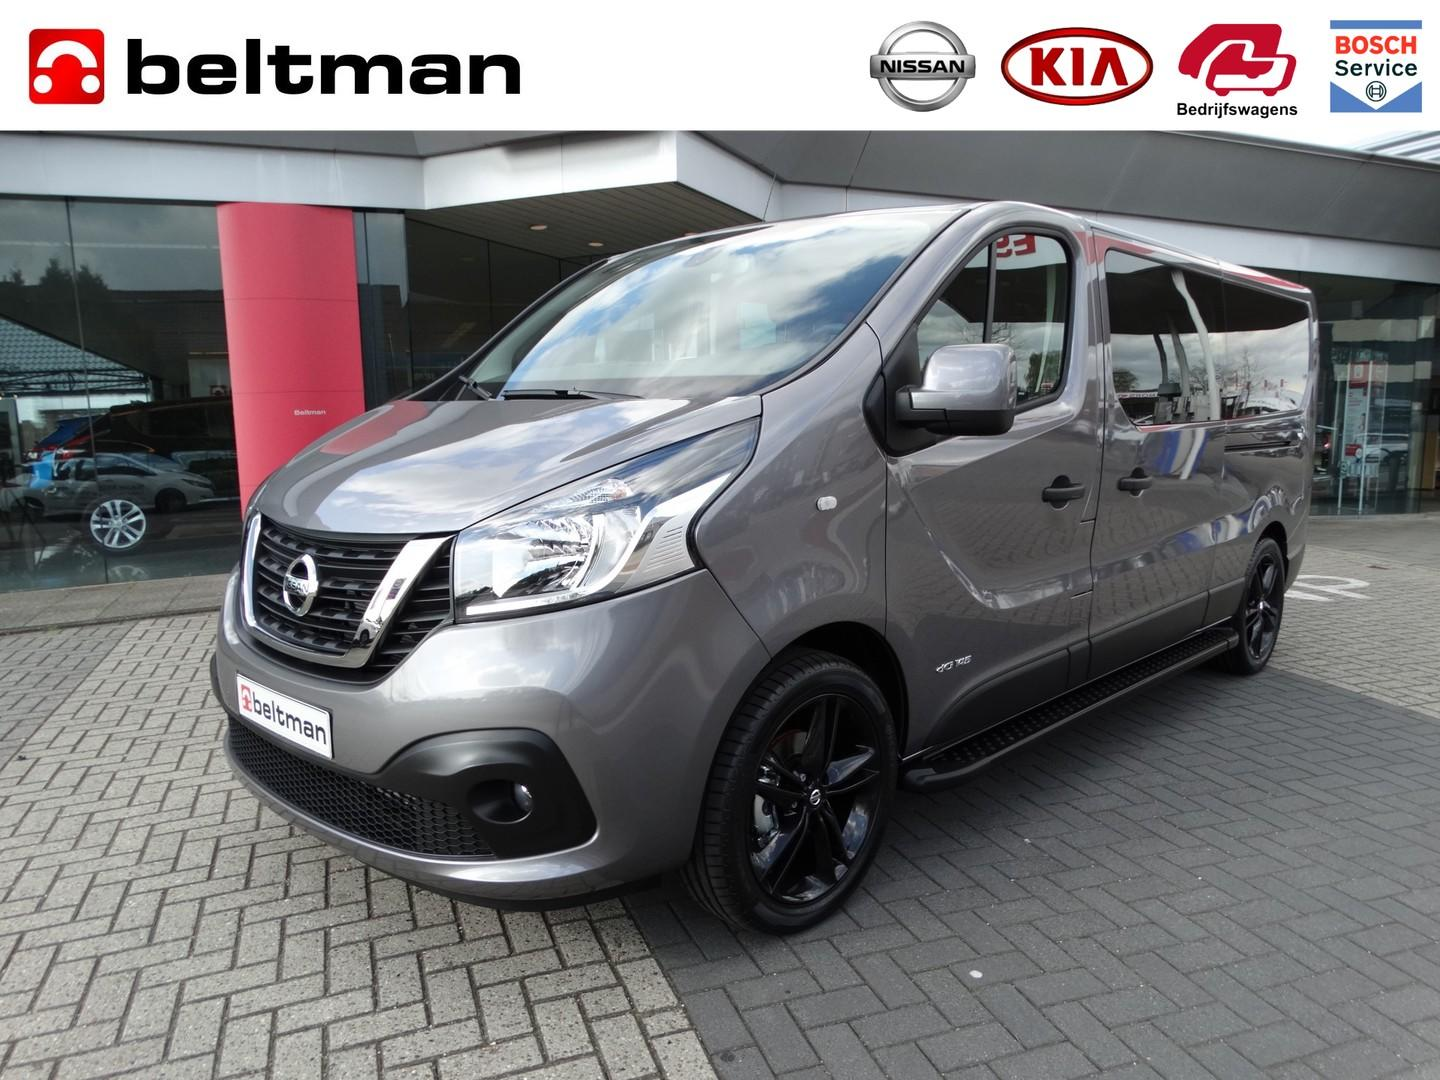 Nissan Nv300 1.6 dci 145 l2h1 optima dc luxe s&s